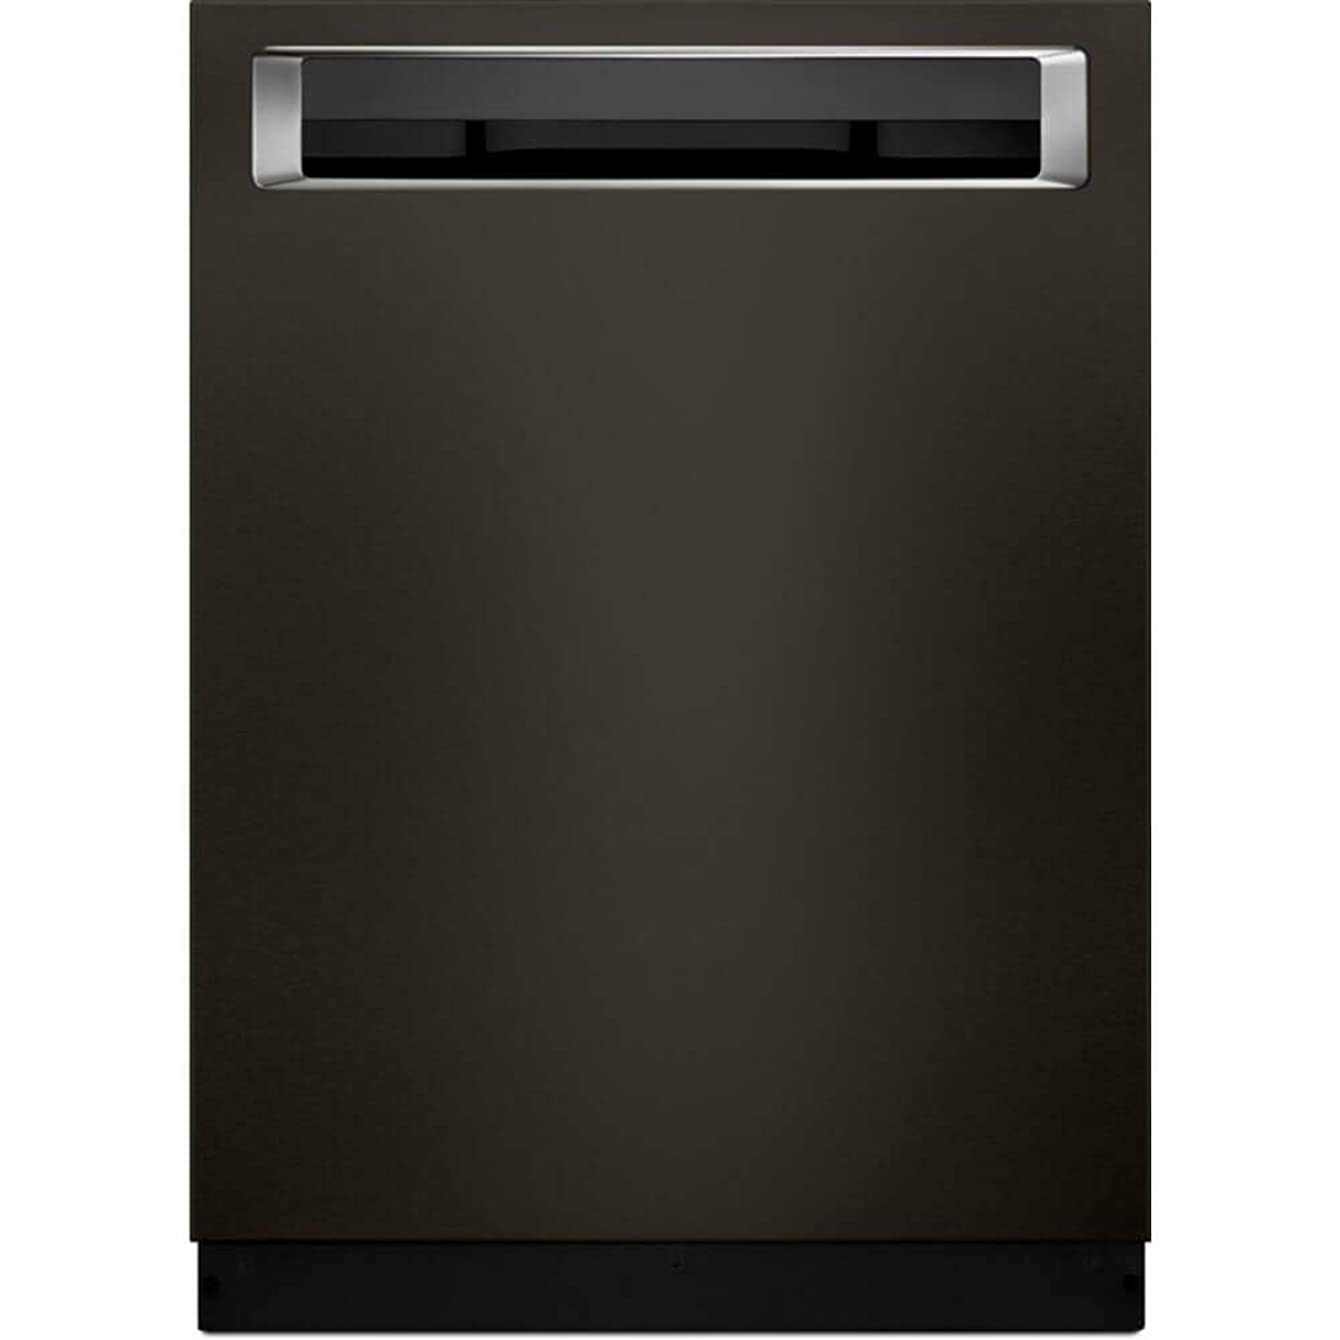 KitchenAid KDPE334GBS 39 dB Black Stainless Built-In Dishwasher with Third Rack (Renewed)